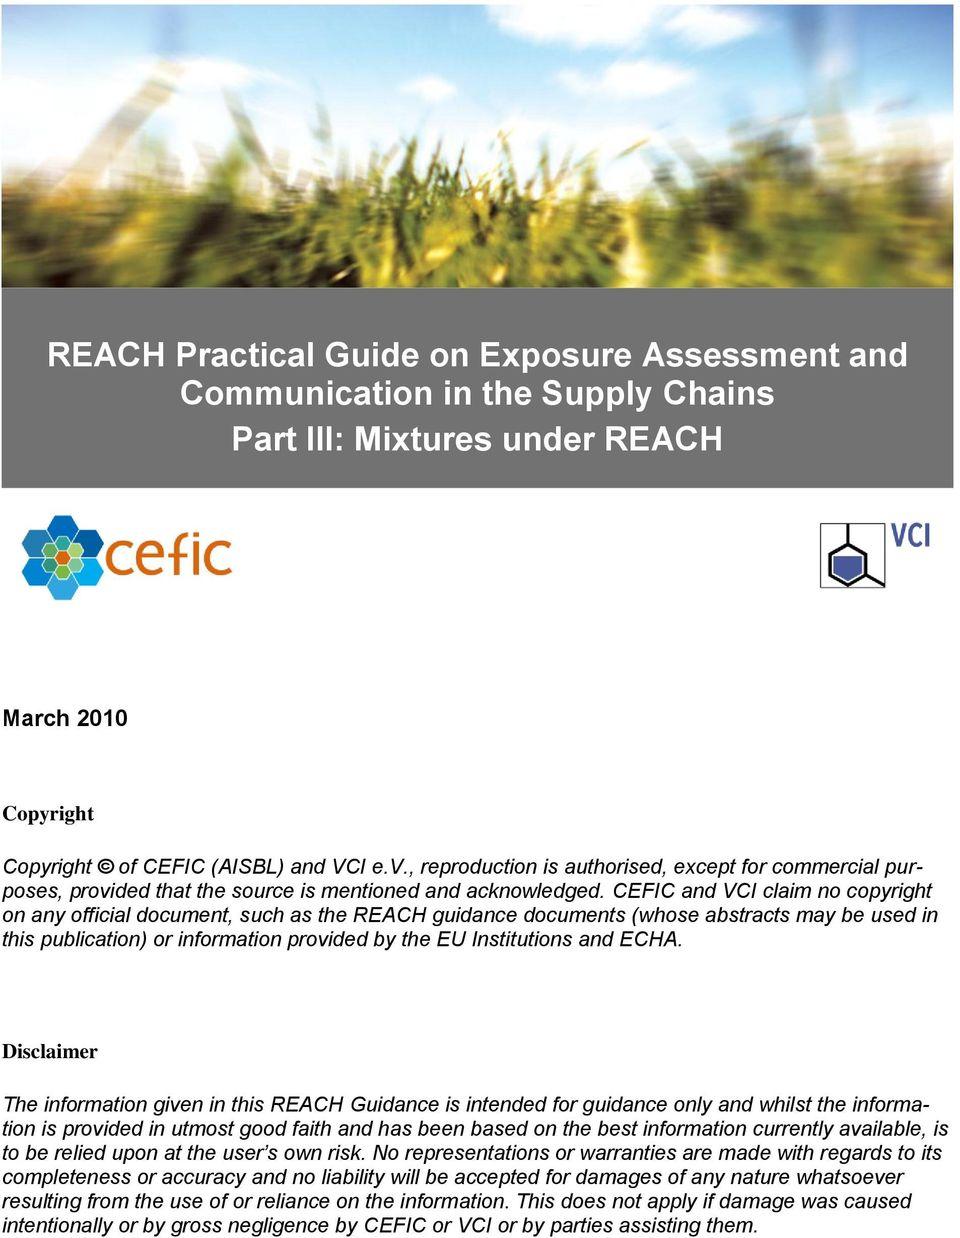 CEFIC and VCI claim no copyright on any official document, such as the REACH guidance documents (whose abstracts may be used in this publication) or information provided by the EU Institutions and